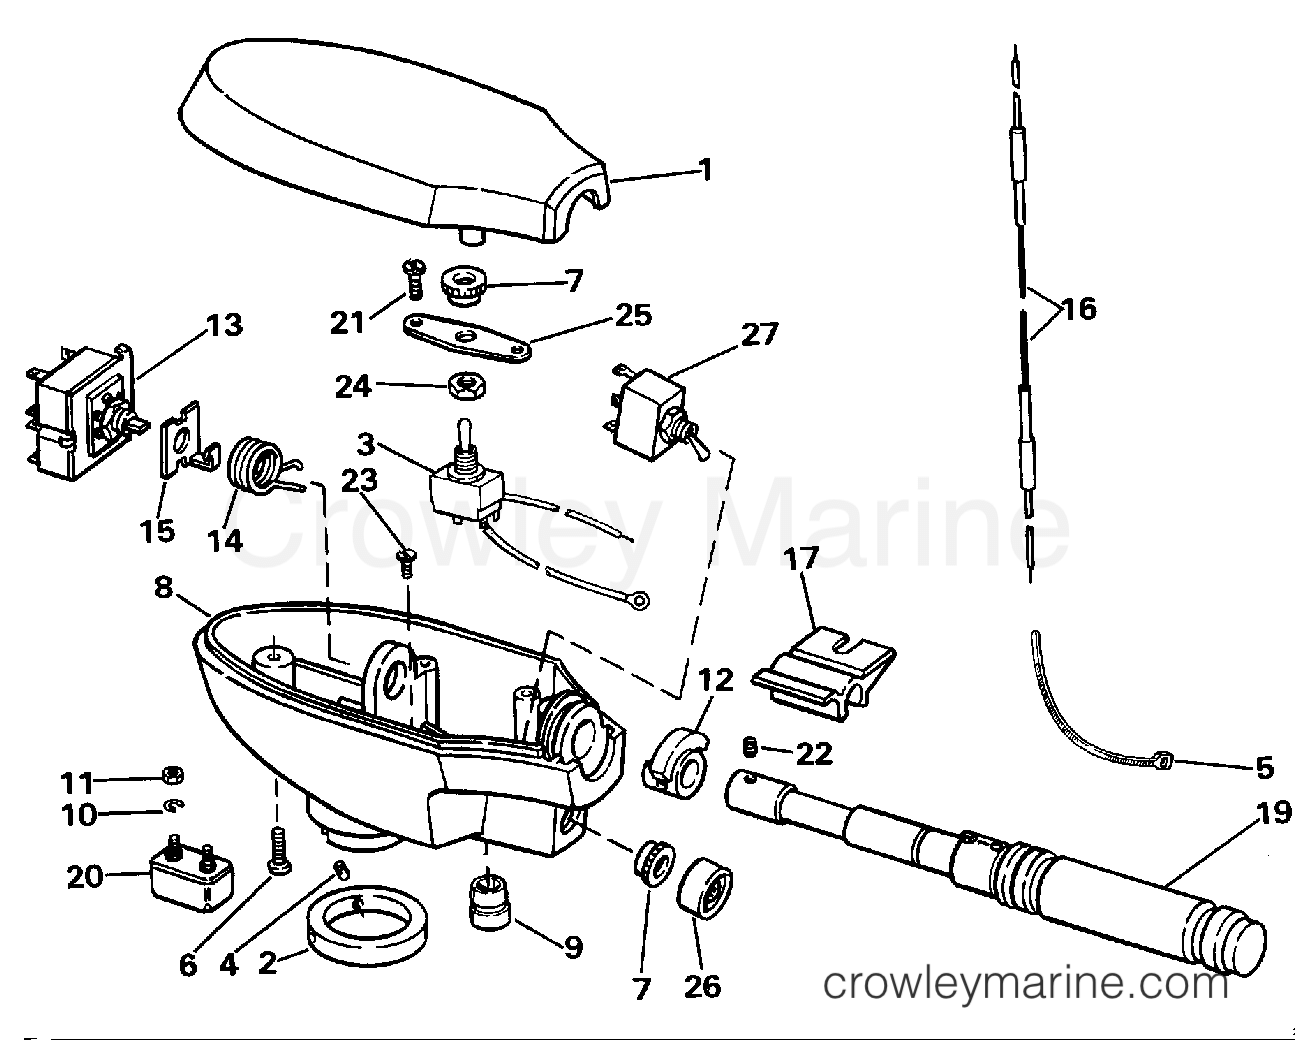 """1990 Electric Motors 12 Volt - JBHL2TY - CONTROL HOUSING GROUP/HAND STEERING (""""A"""" OR """"Y"""" MDL SUFFIX)"""